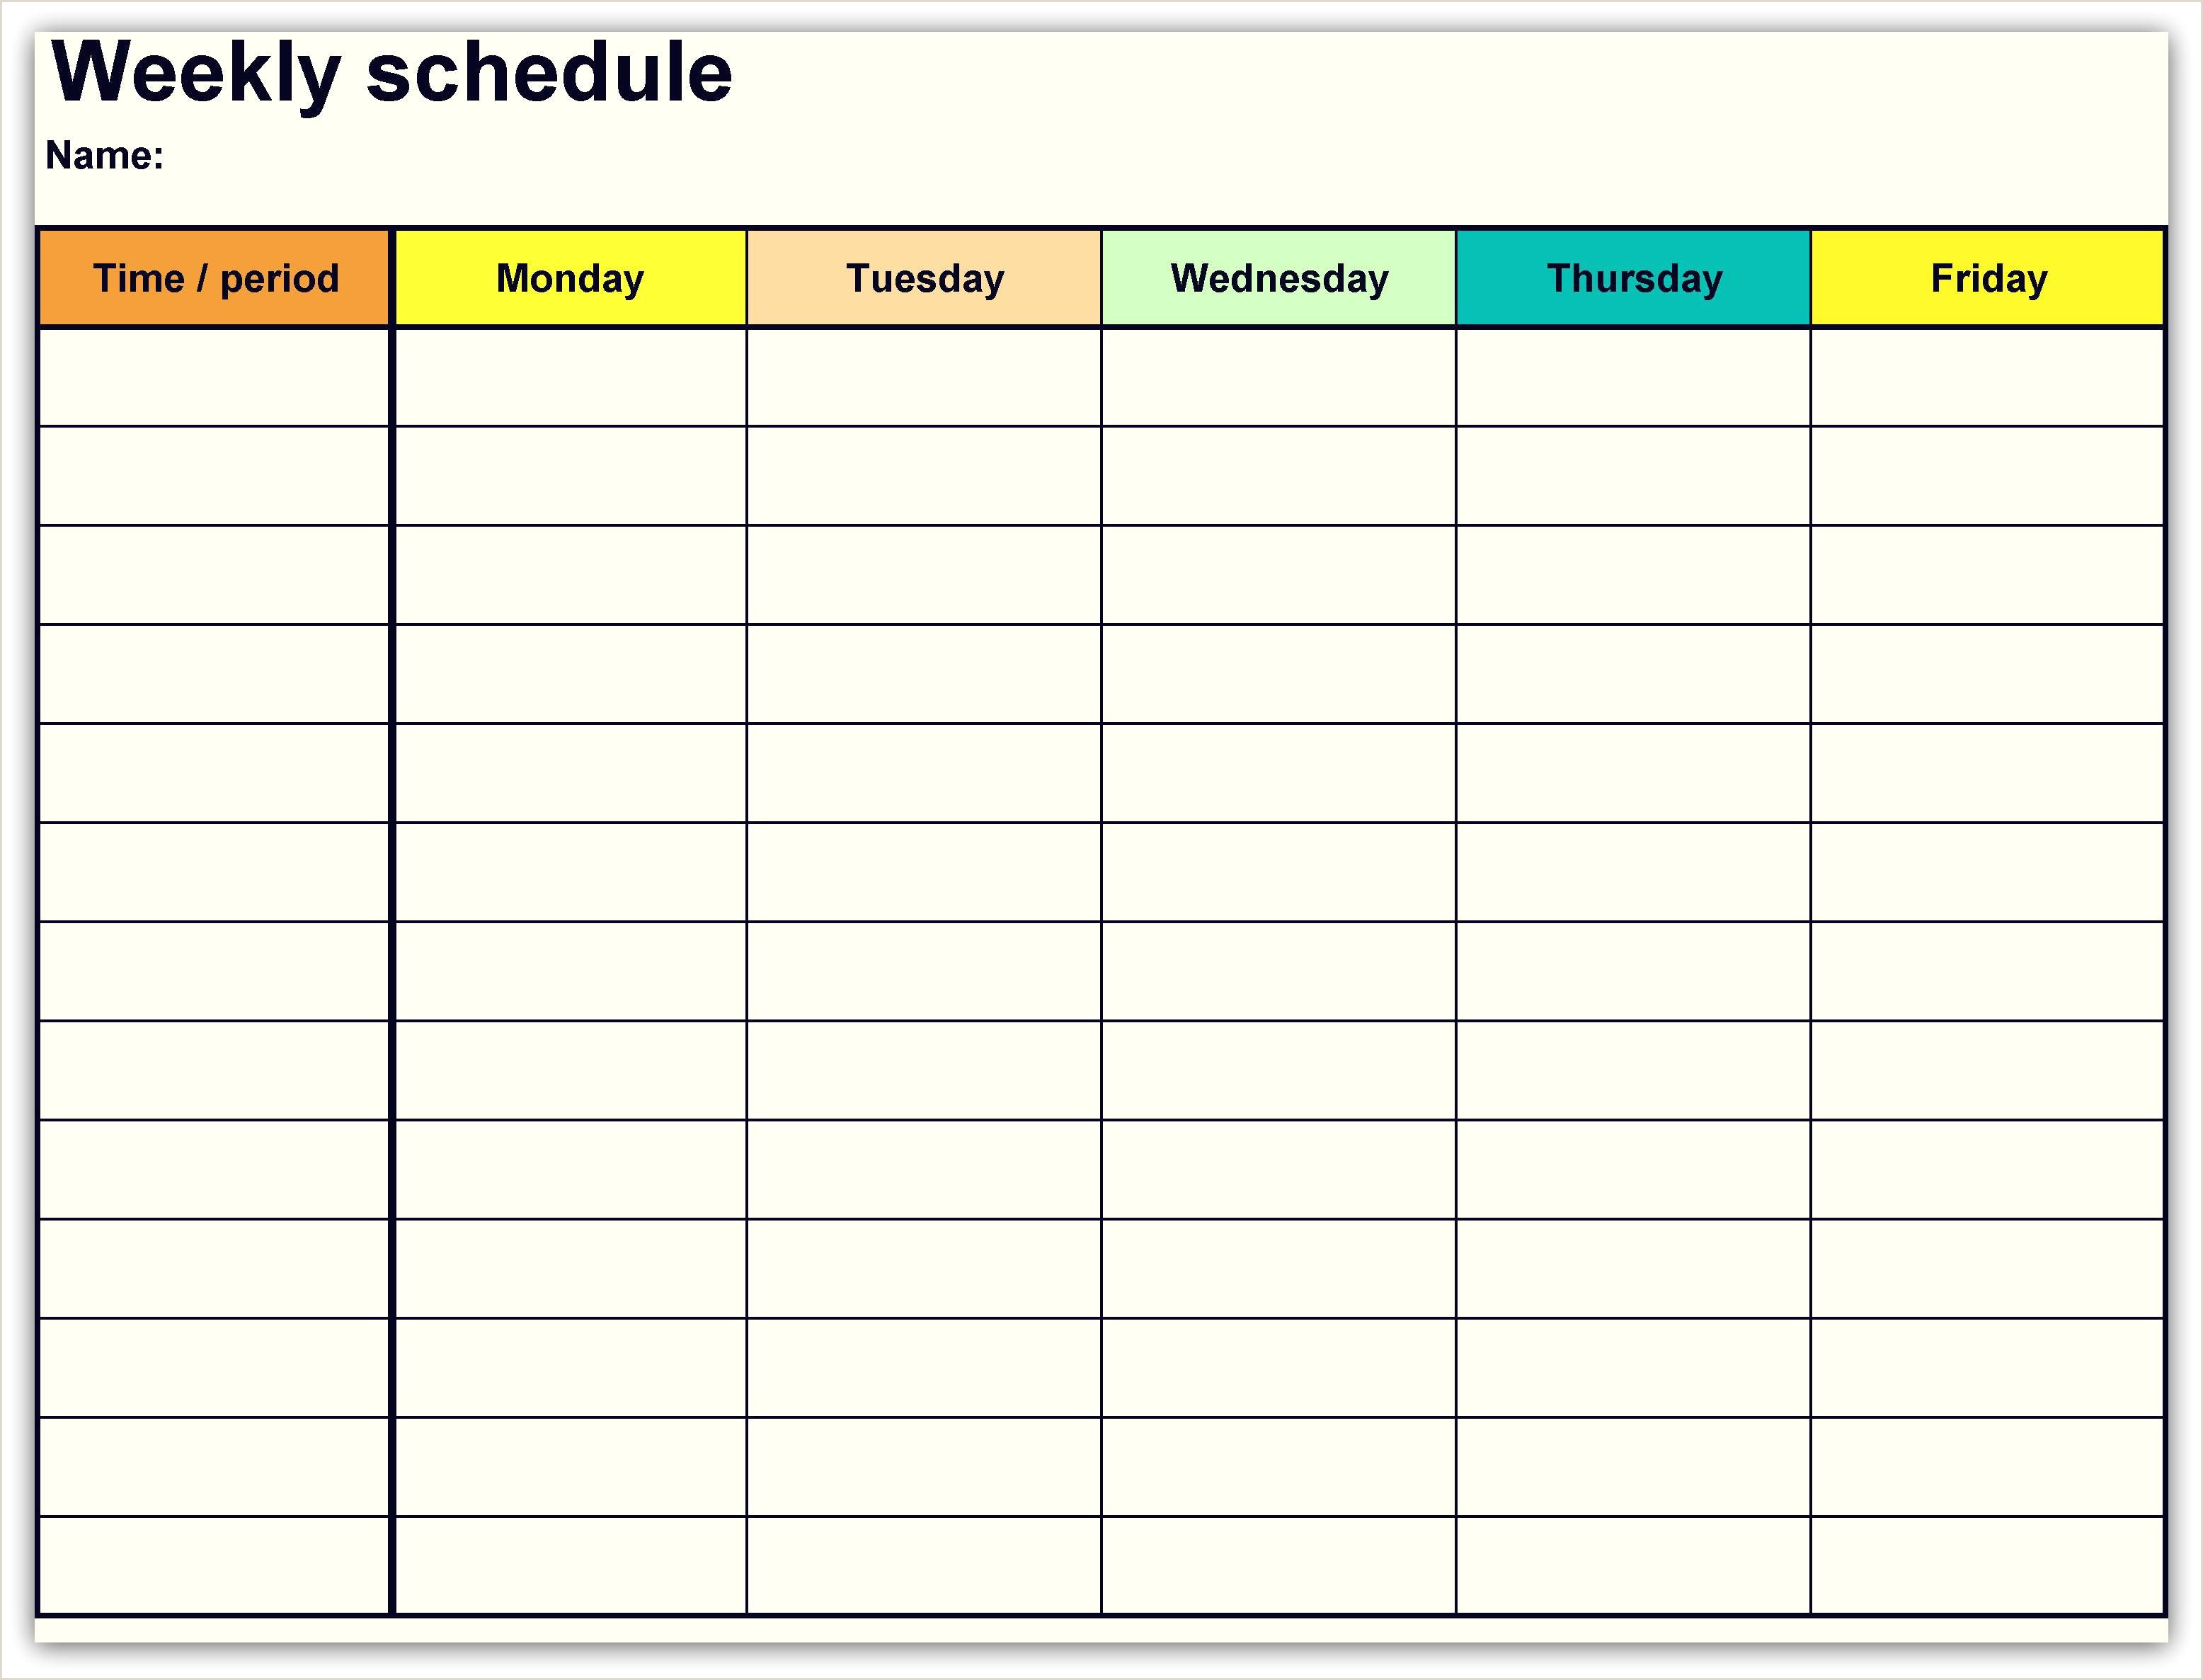 Google Drive Weekly Schedule Template 2018 Weekly Planner Calendar 2018 Calendars